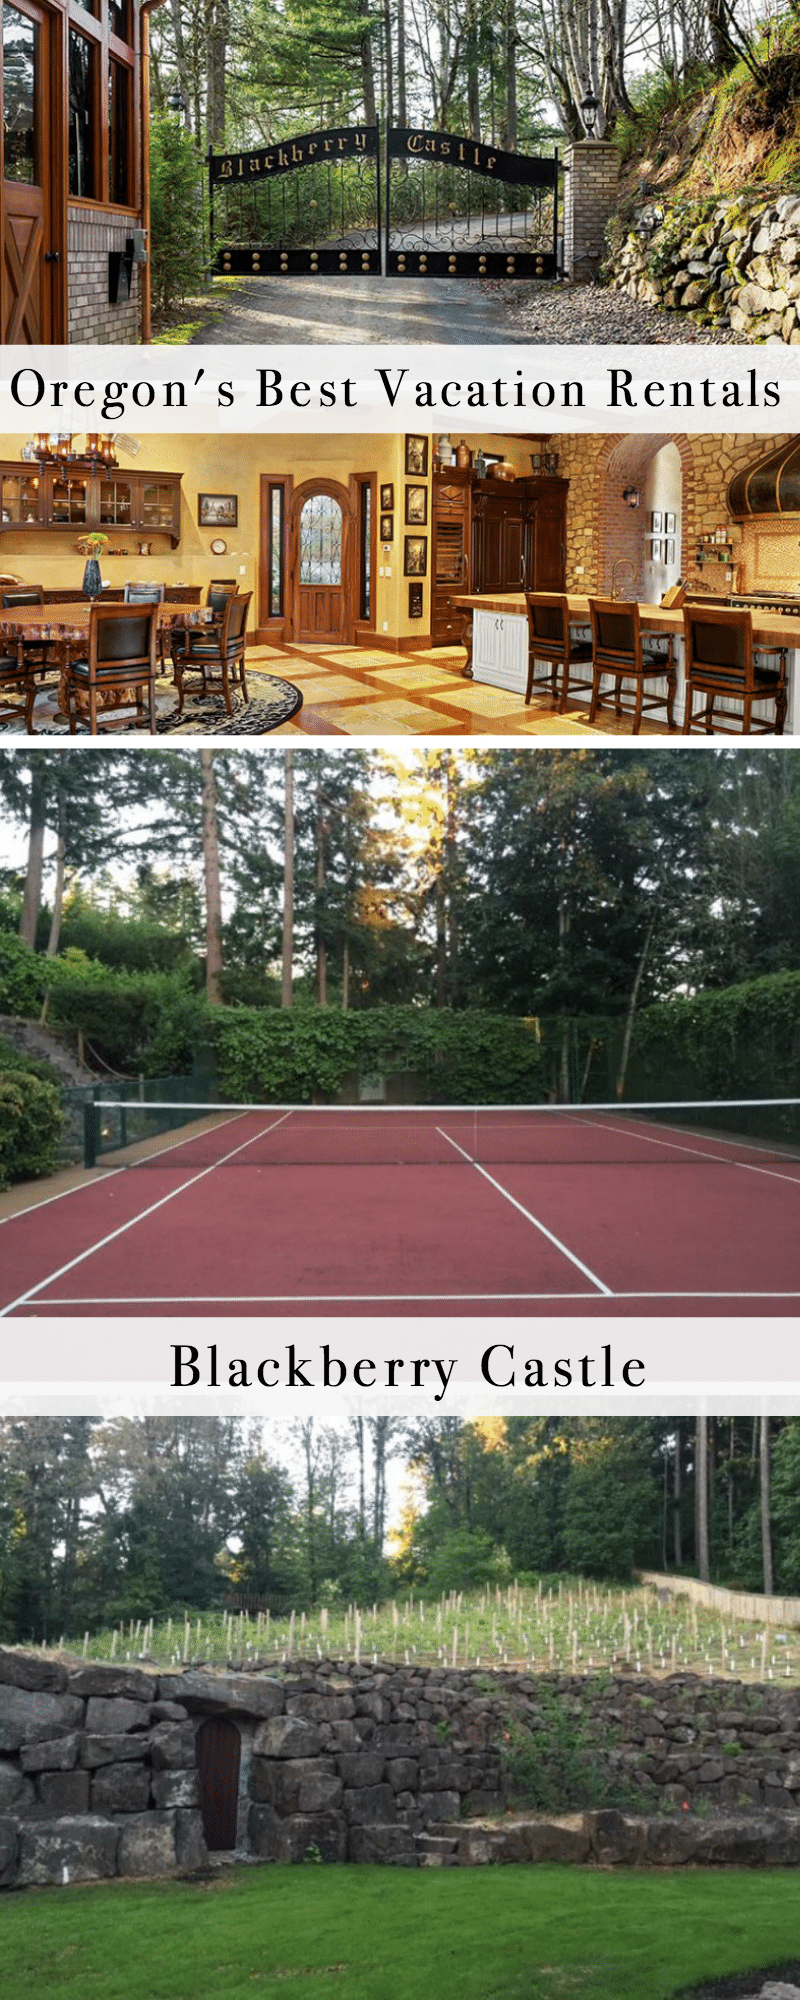 Oregon's Best Vacation Rentals: Blackberry Castle